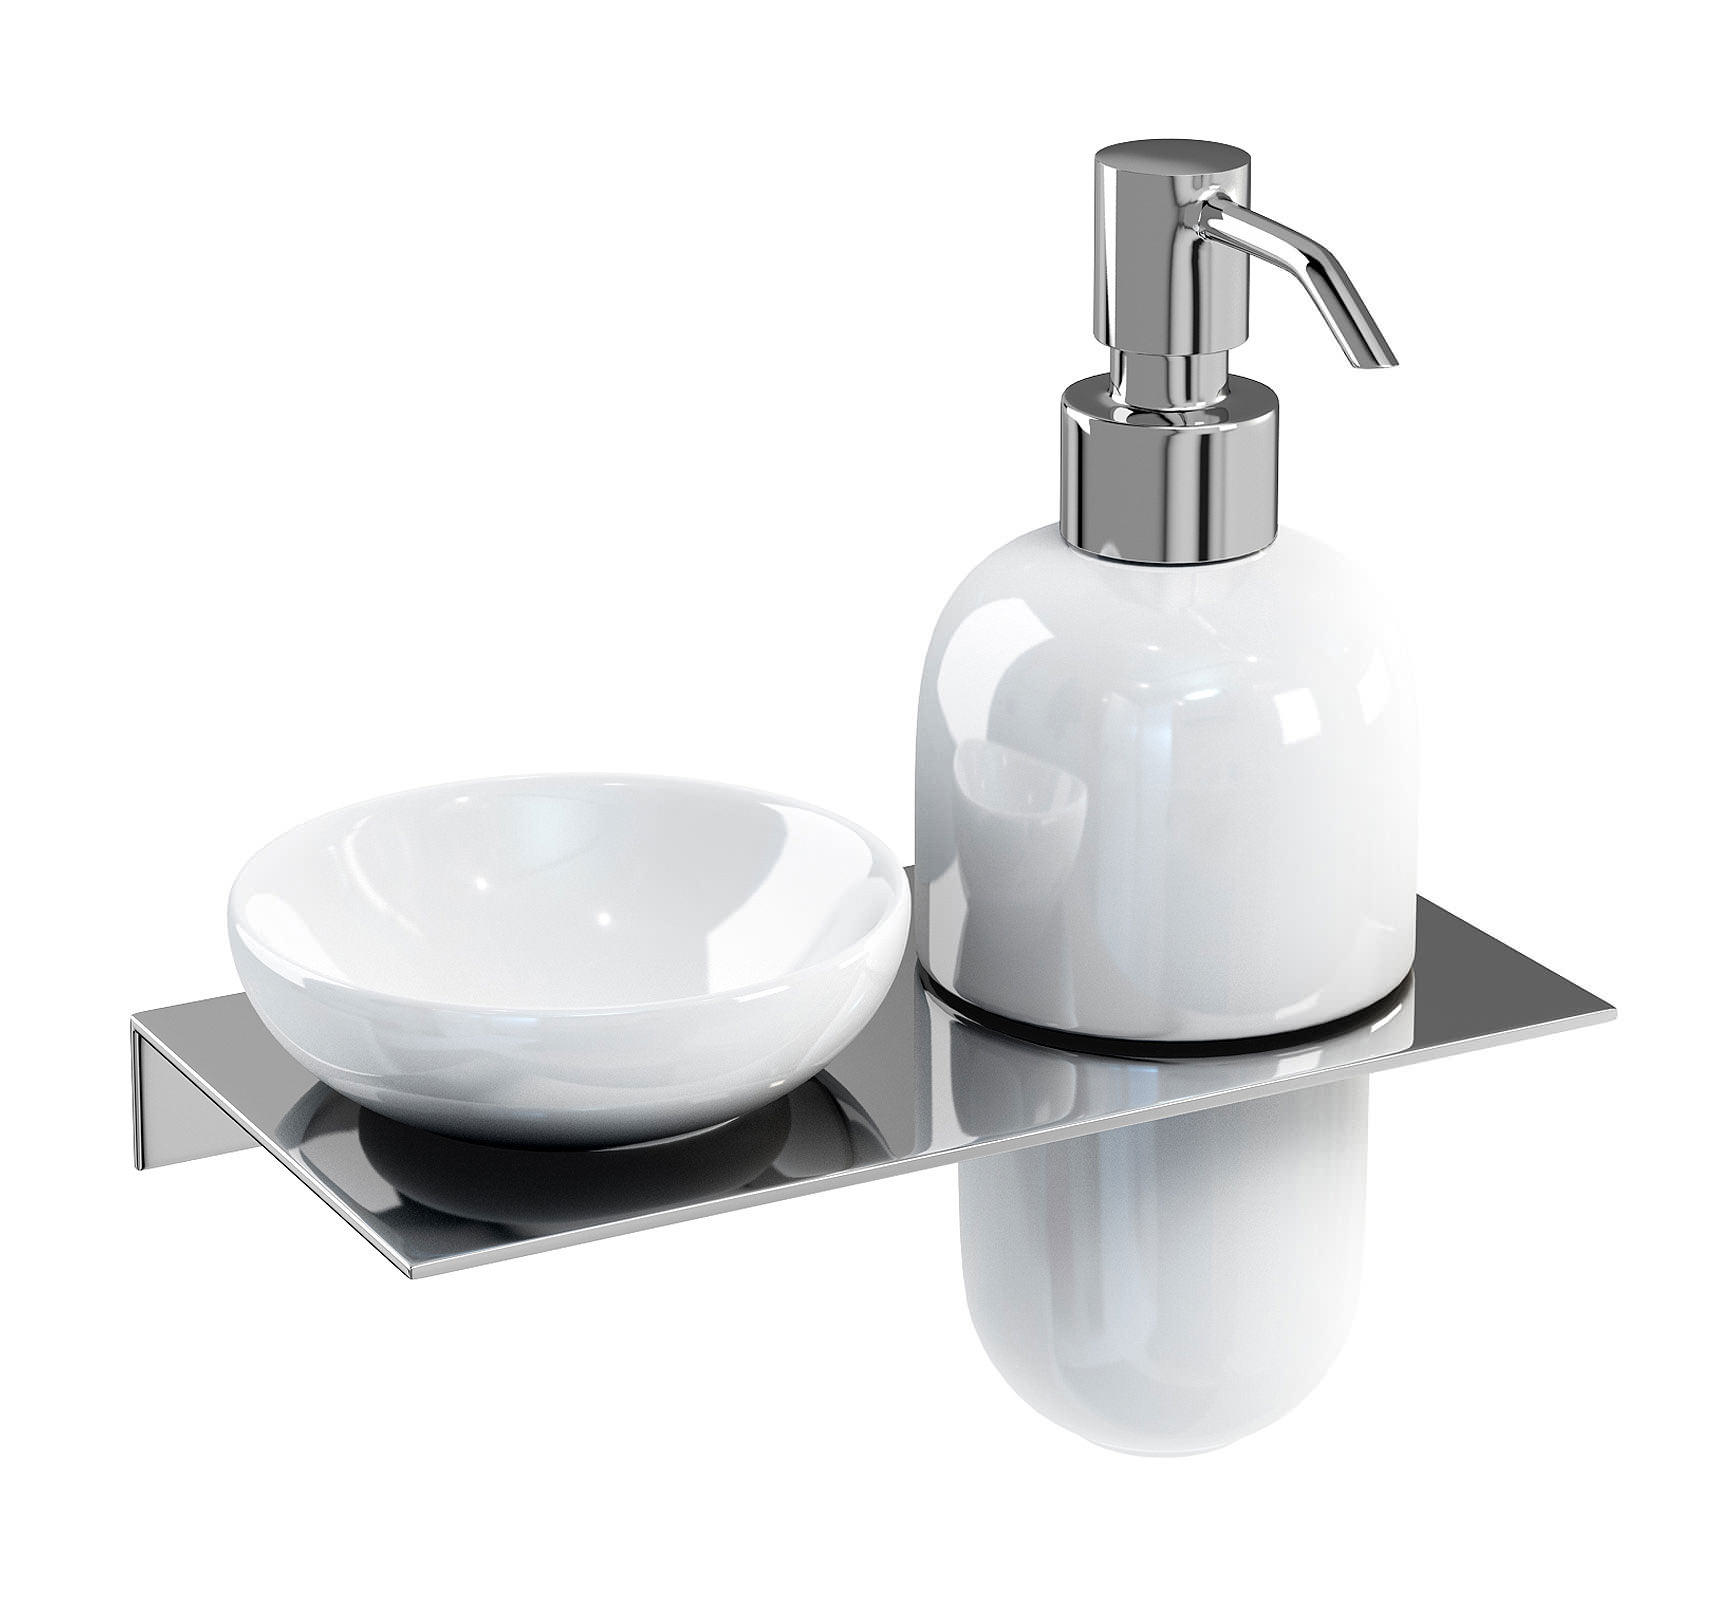 Britton stainless steel shelf with soap dish and soap Dish soap dispenser